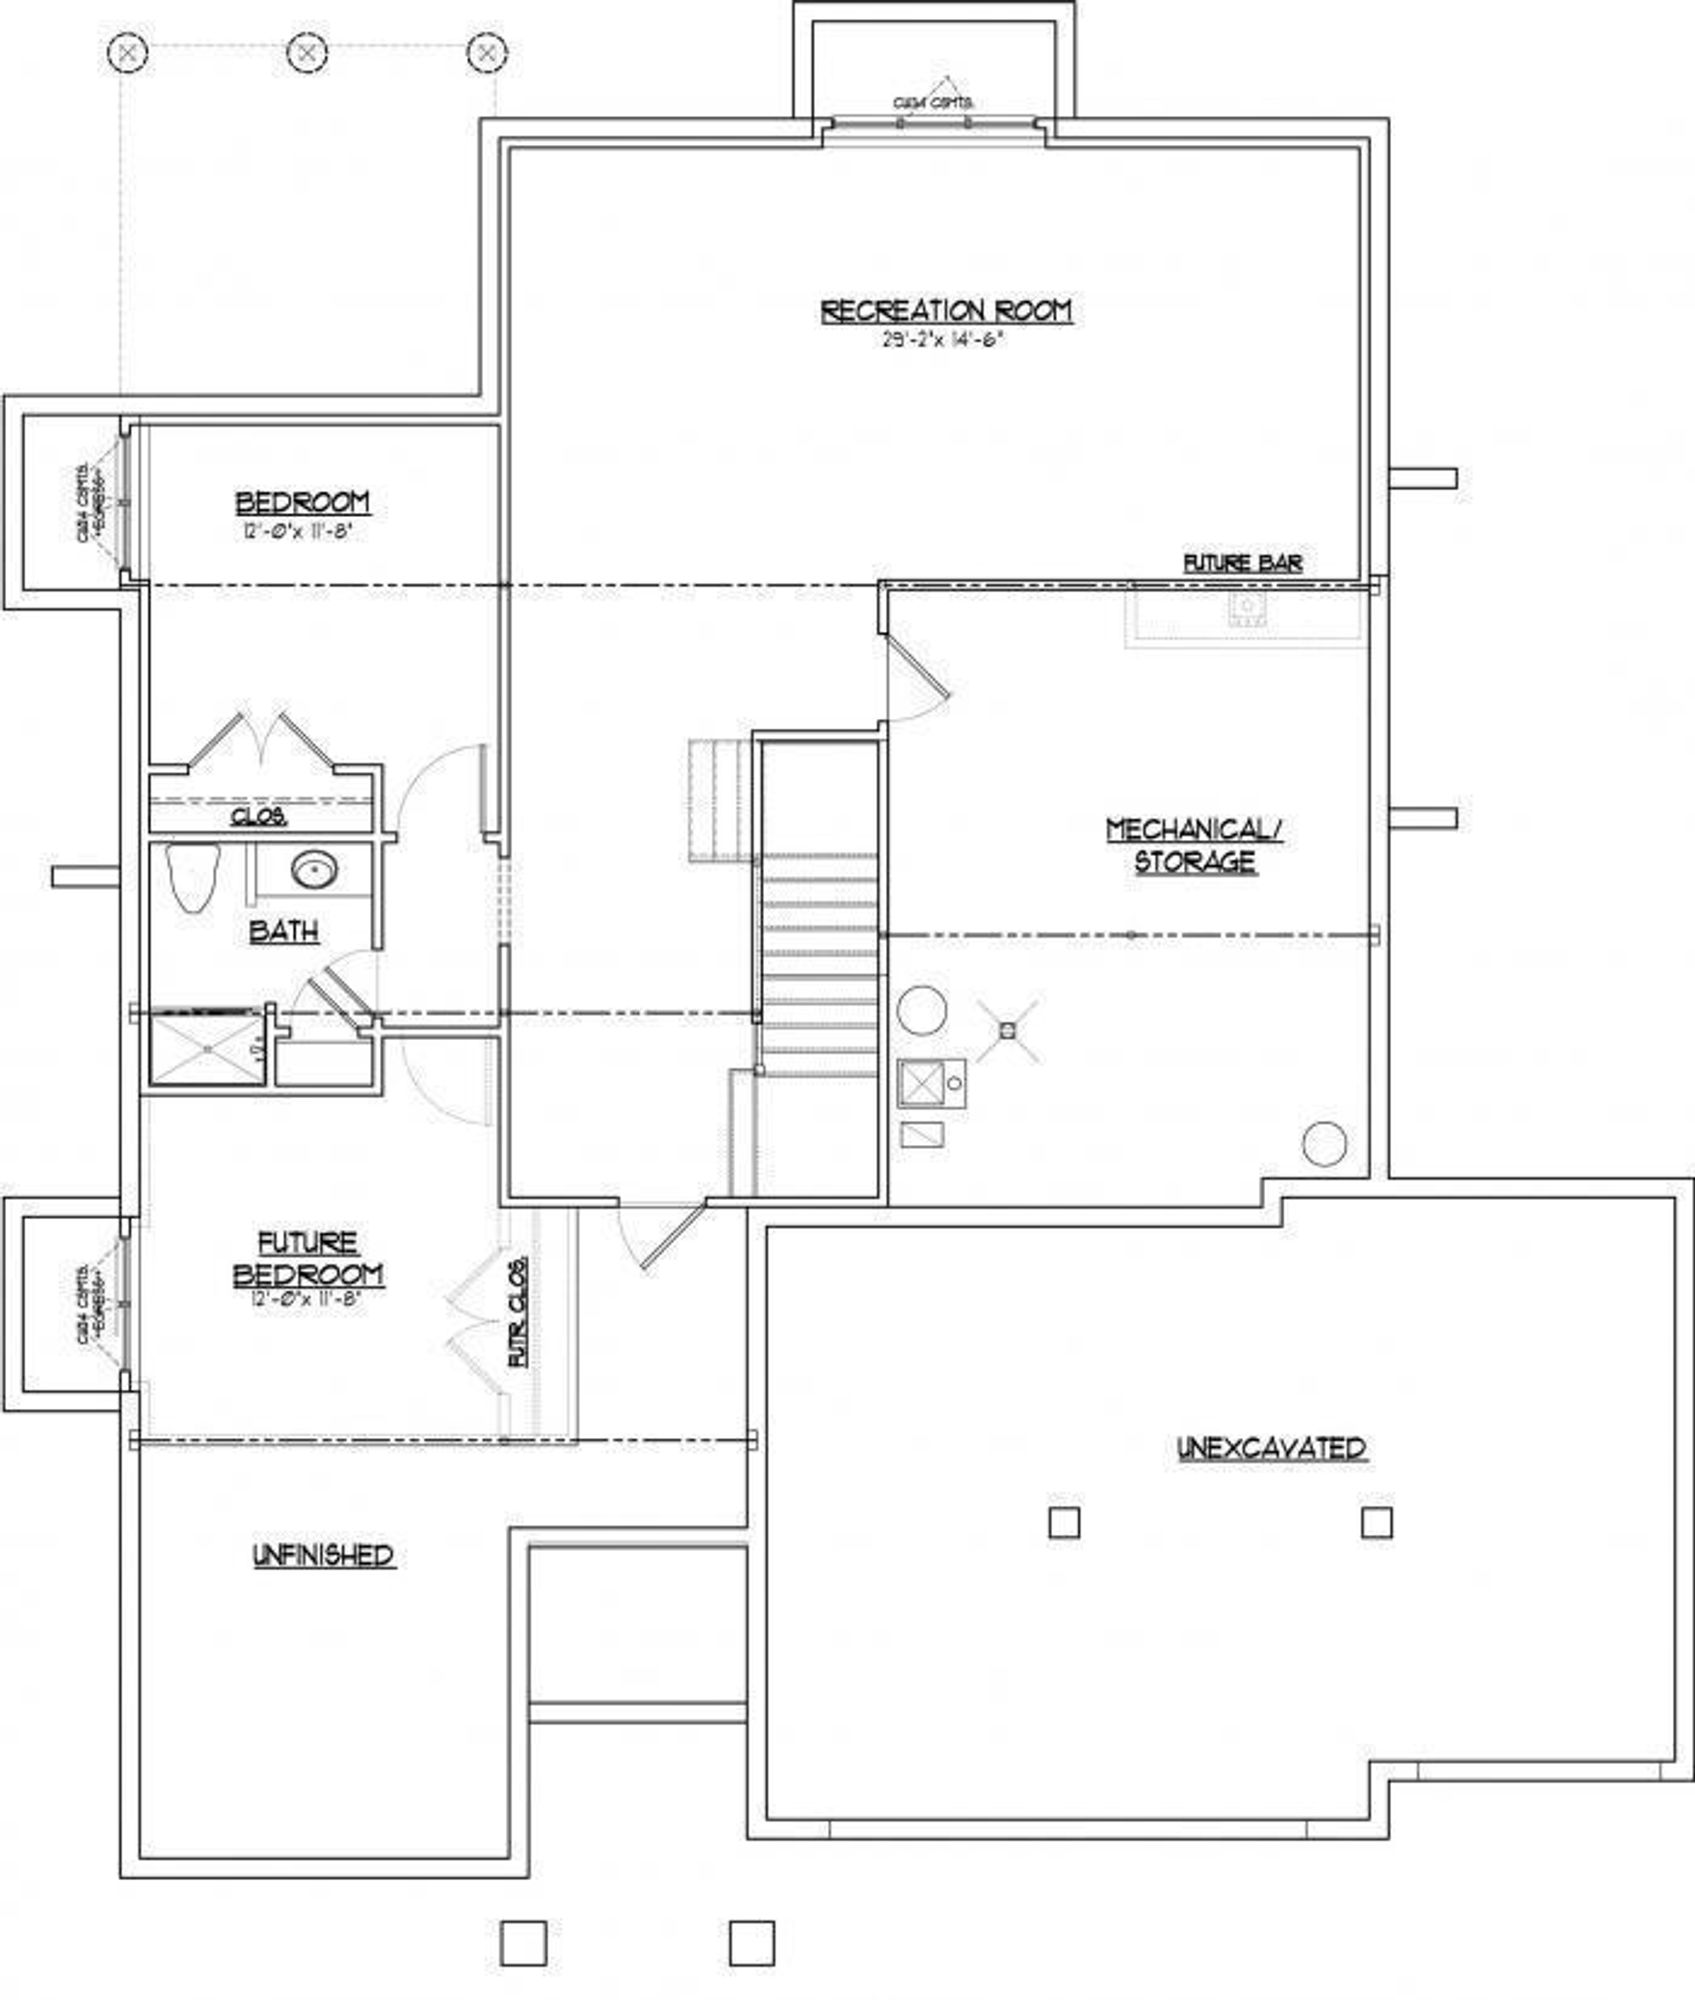 VHR Brookwood Lower Level footprint